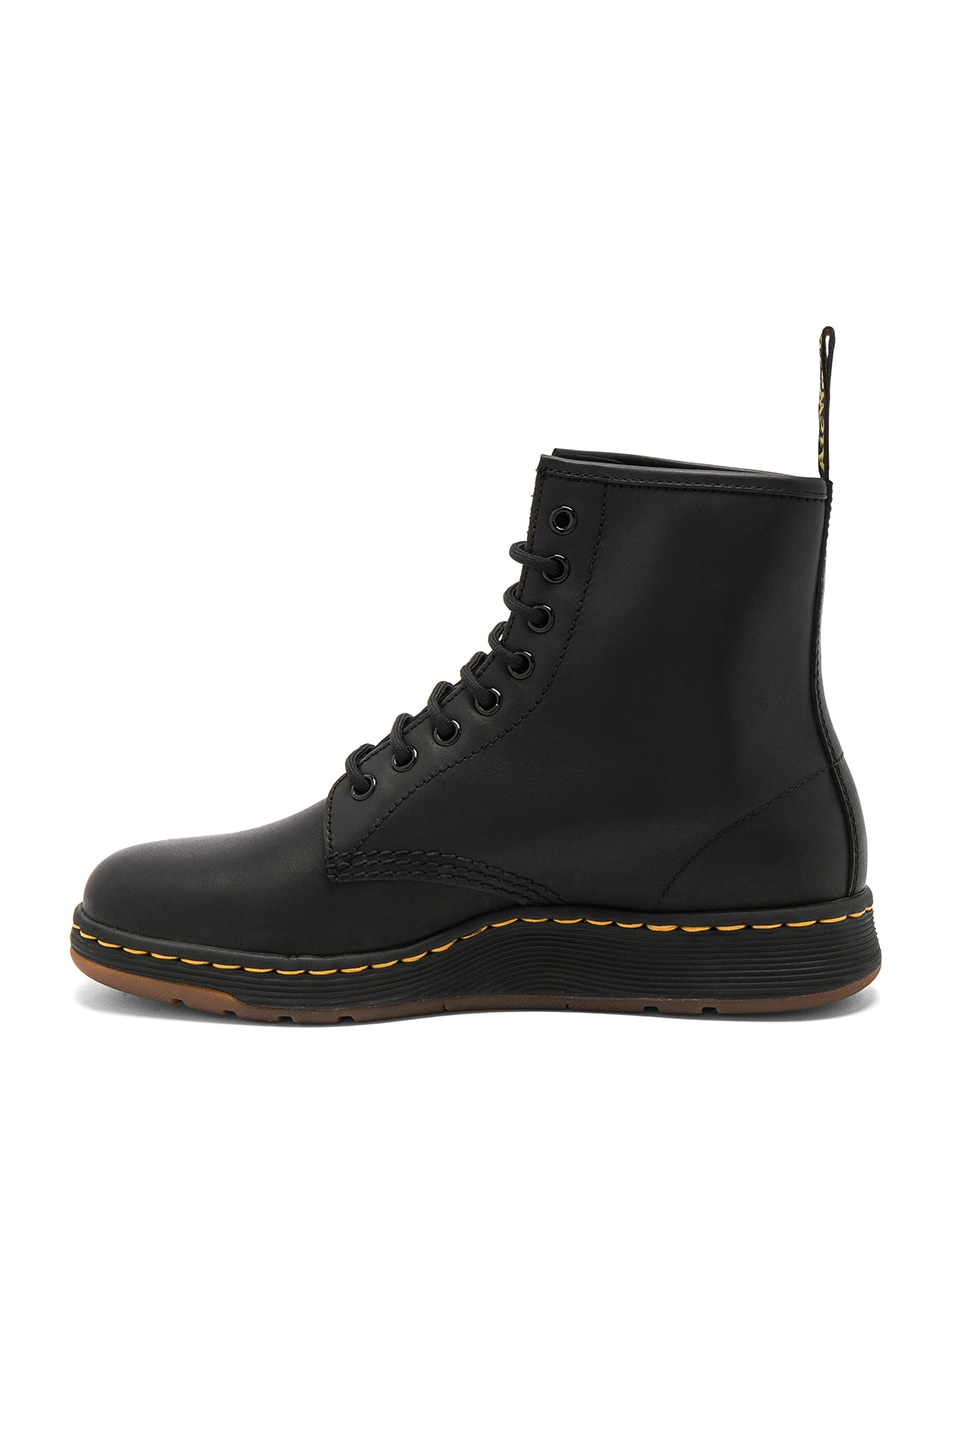 Image 5 of Dr. Martens Newton 8 Eye Leather Boots in Black